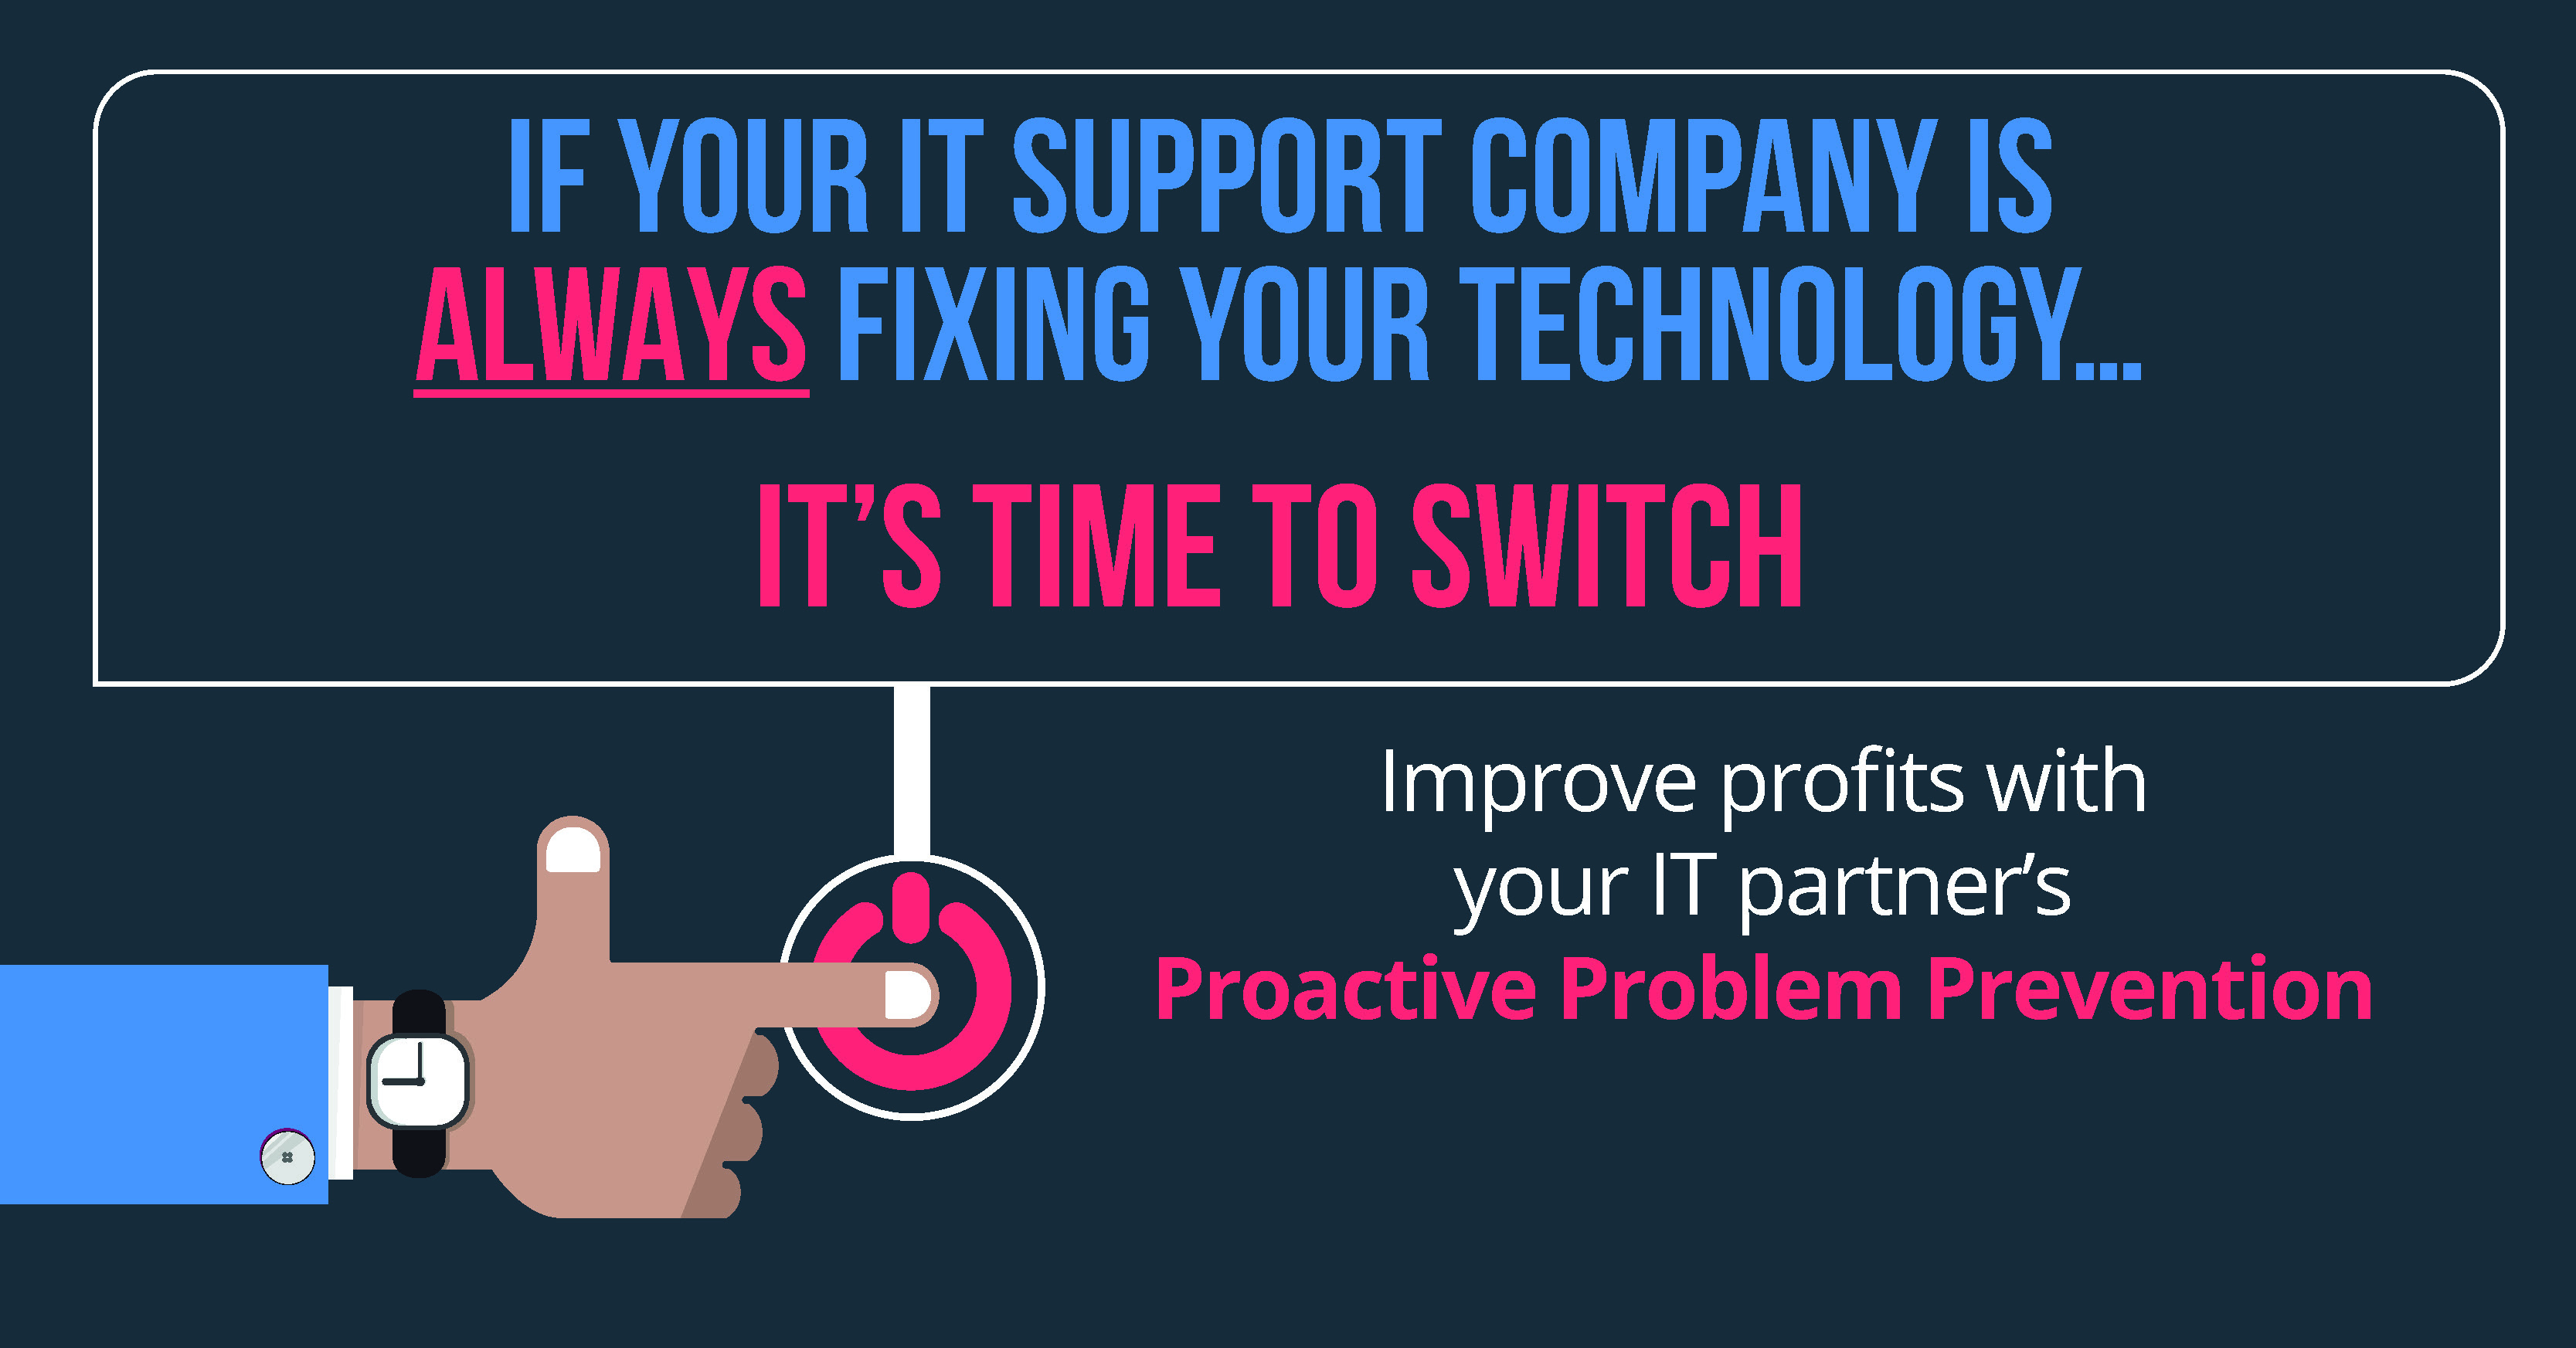 If your IT support company is ALWAYS fixing your technology... it's time to switch